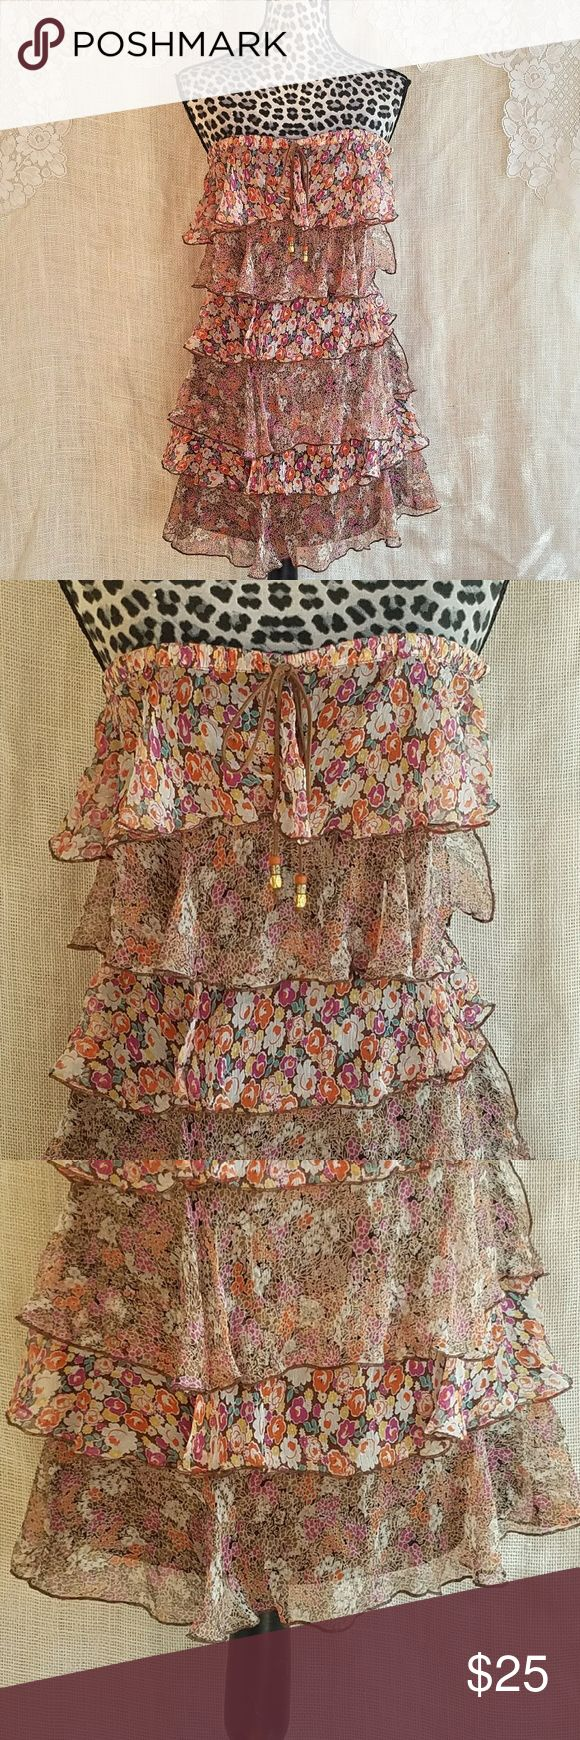 Laundry Shelli Segal Brown Floral Ruffle Dress Sm. Adorable brown tiered ruffle dress with side zip, slight boning in the bodice, and leather like tie straps. Size tag is missing, but it is as size small. Excellent condition, no flaws seen. Laundry by Shelli Segal Dresses Mini